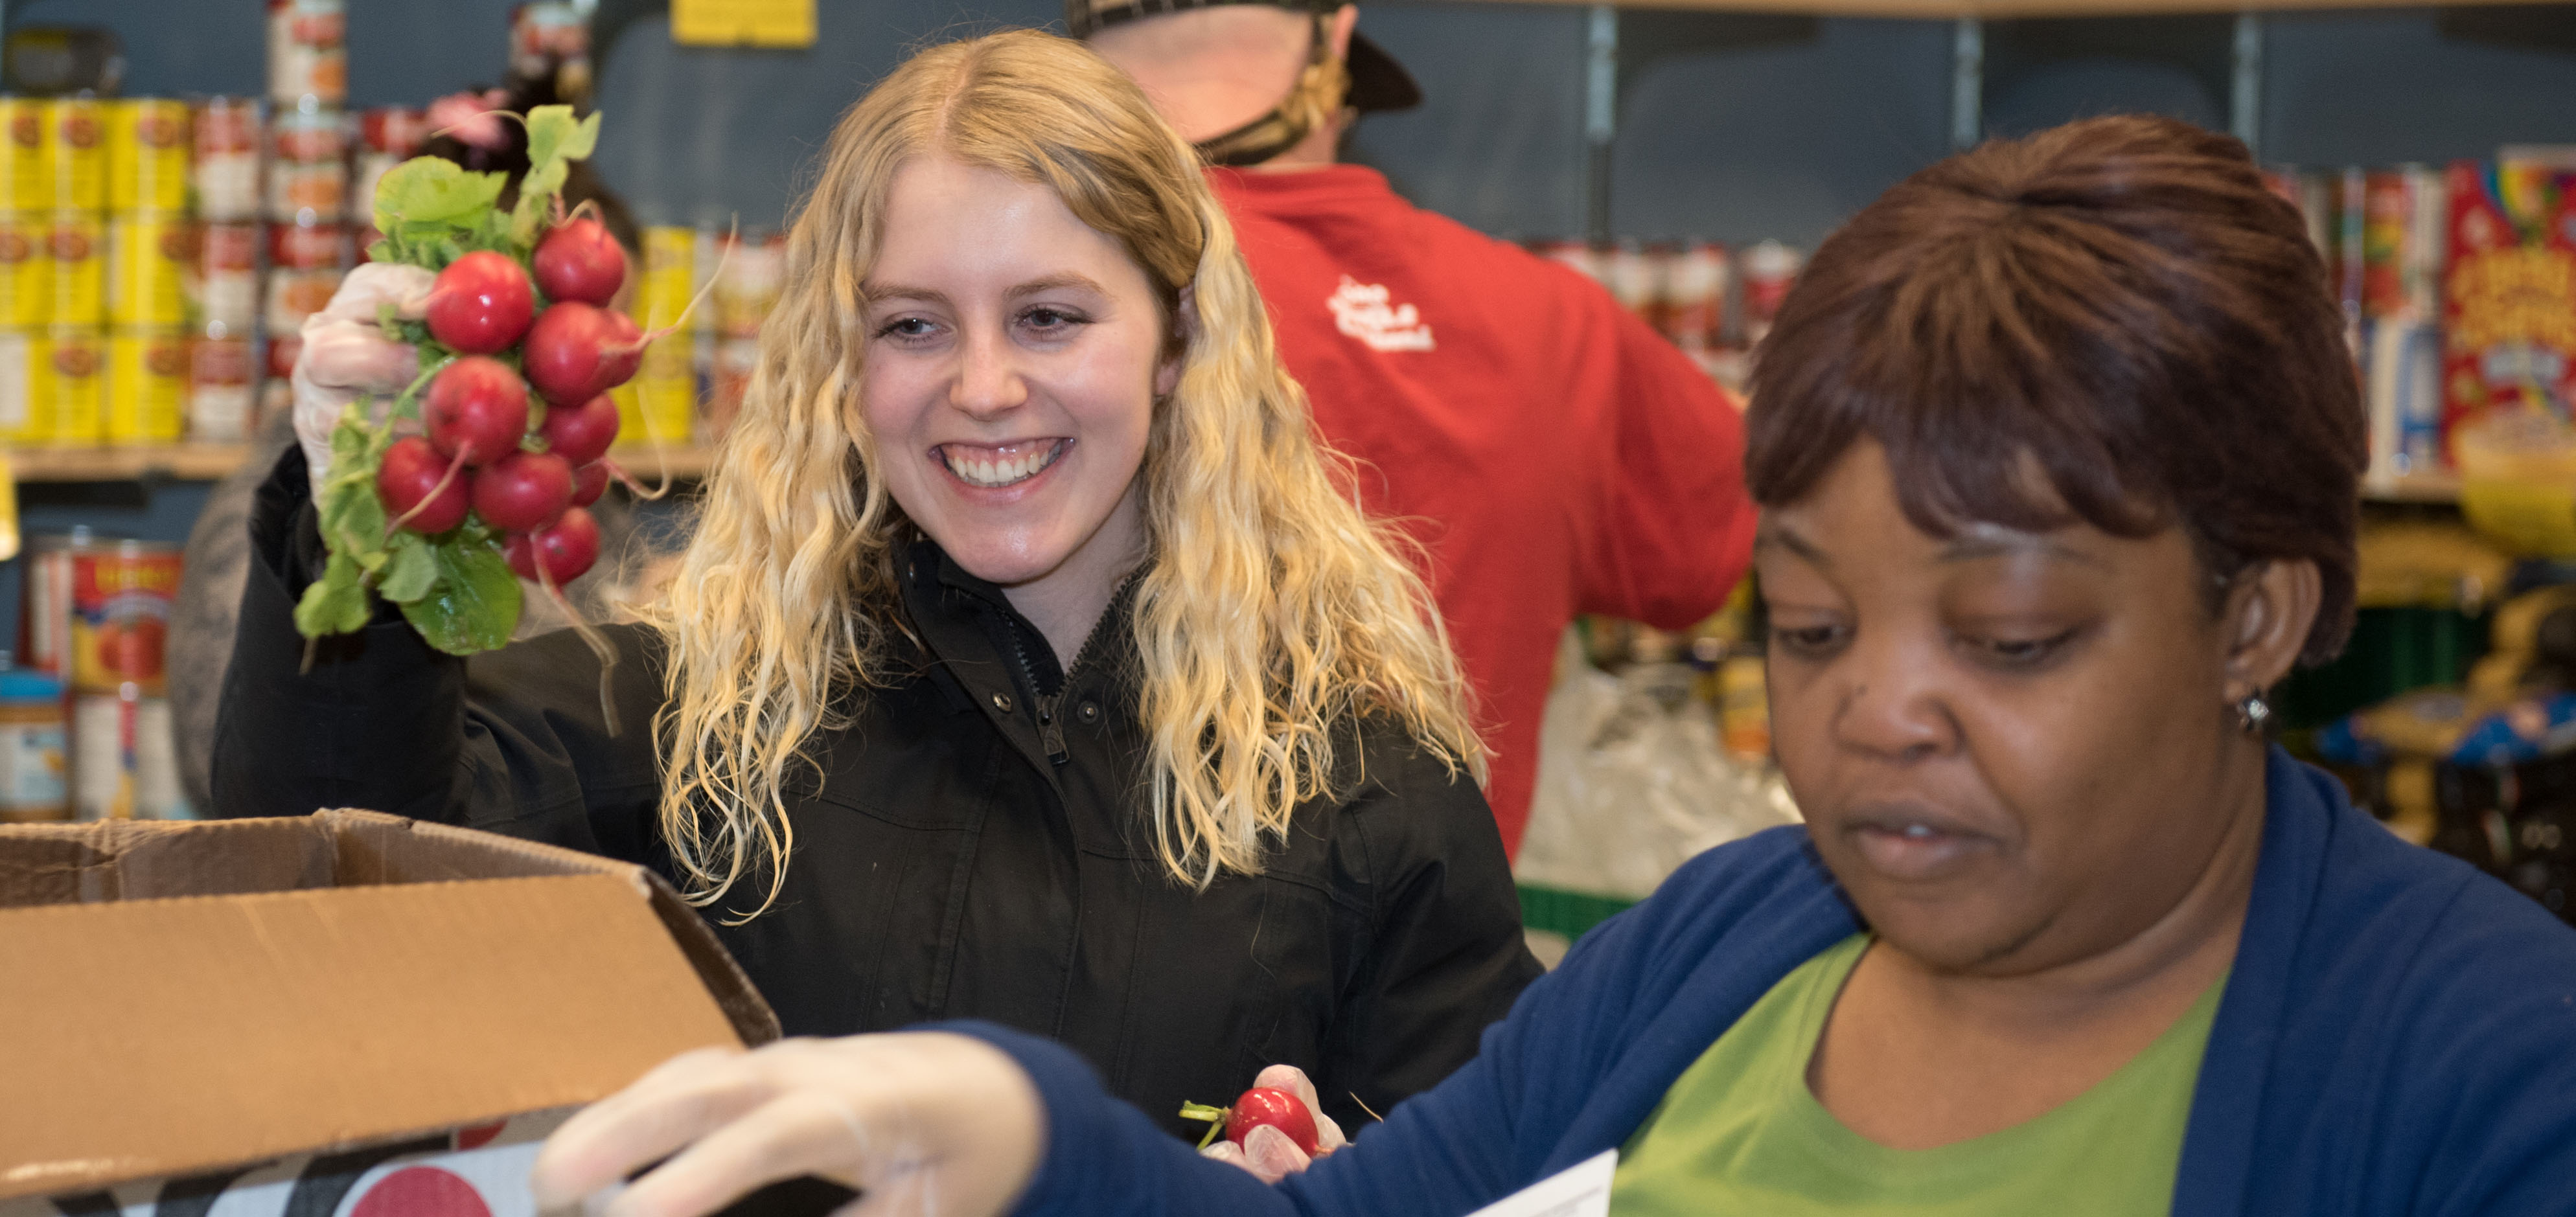 Stacey Wharton and colleague working at a Food Bank